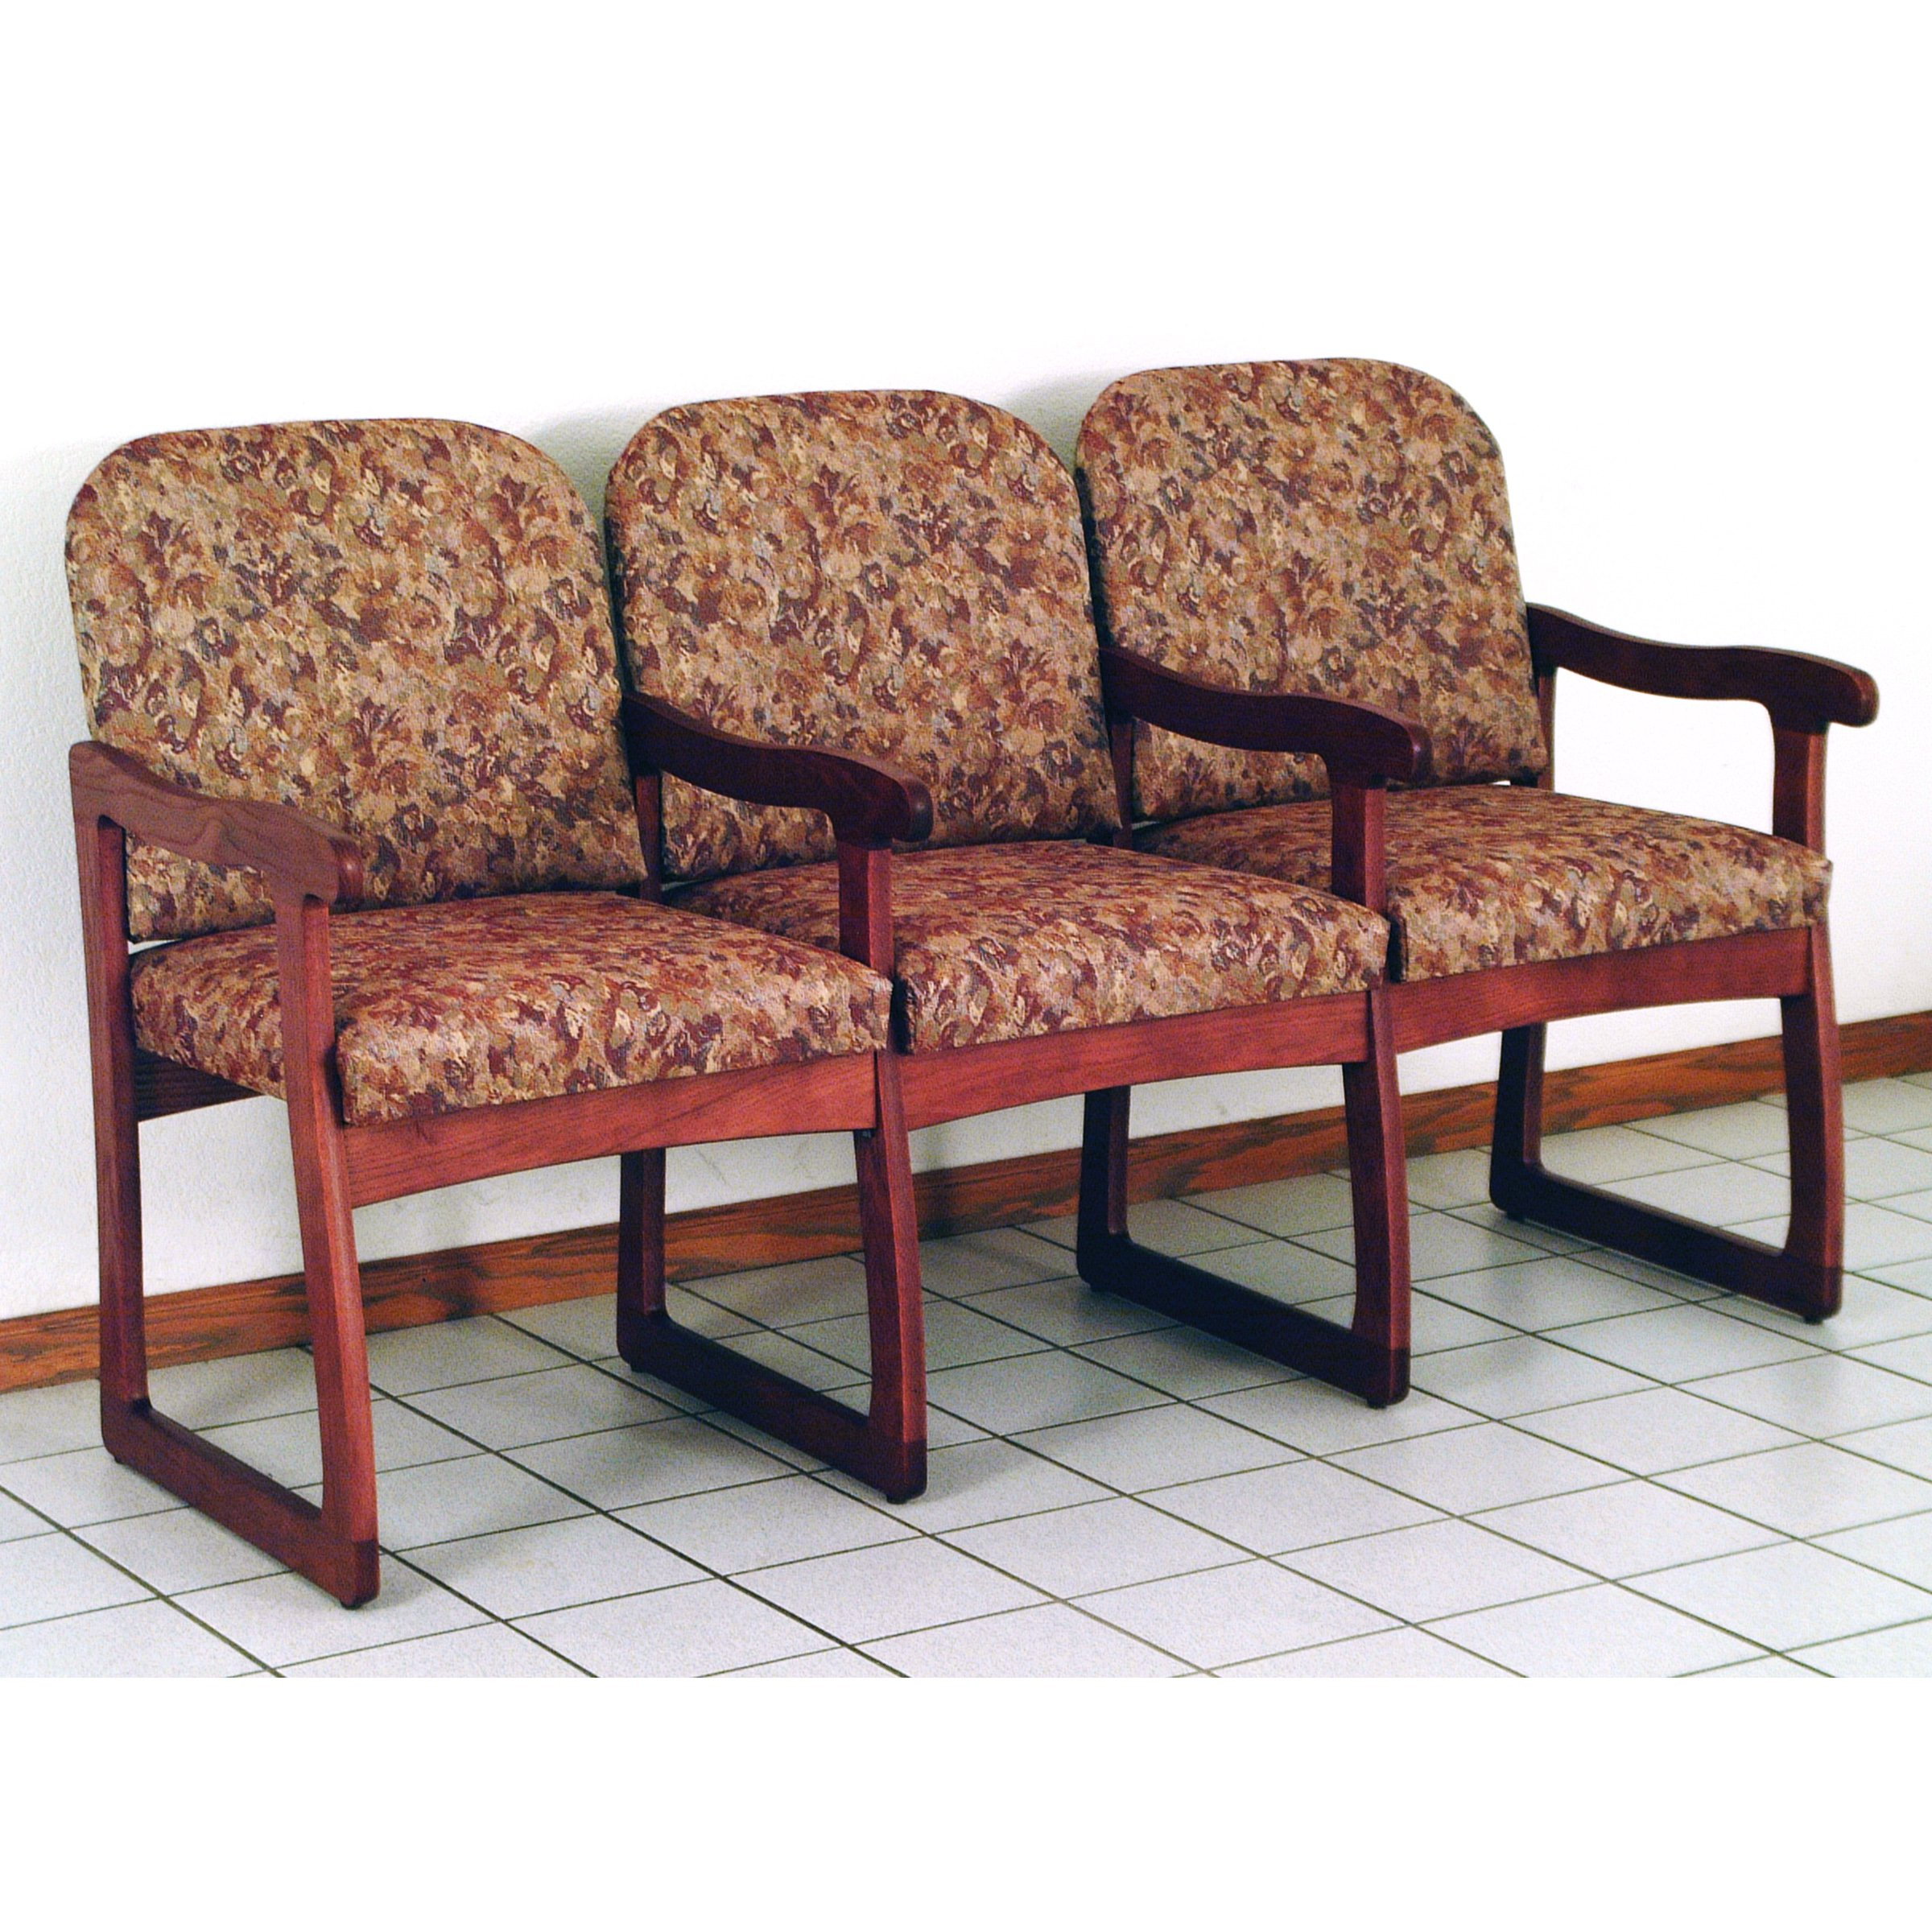 Wooden Mallet DW7-3 Solid Oak 3-Seat Chair with Center Arms